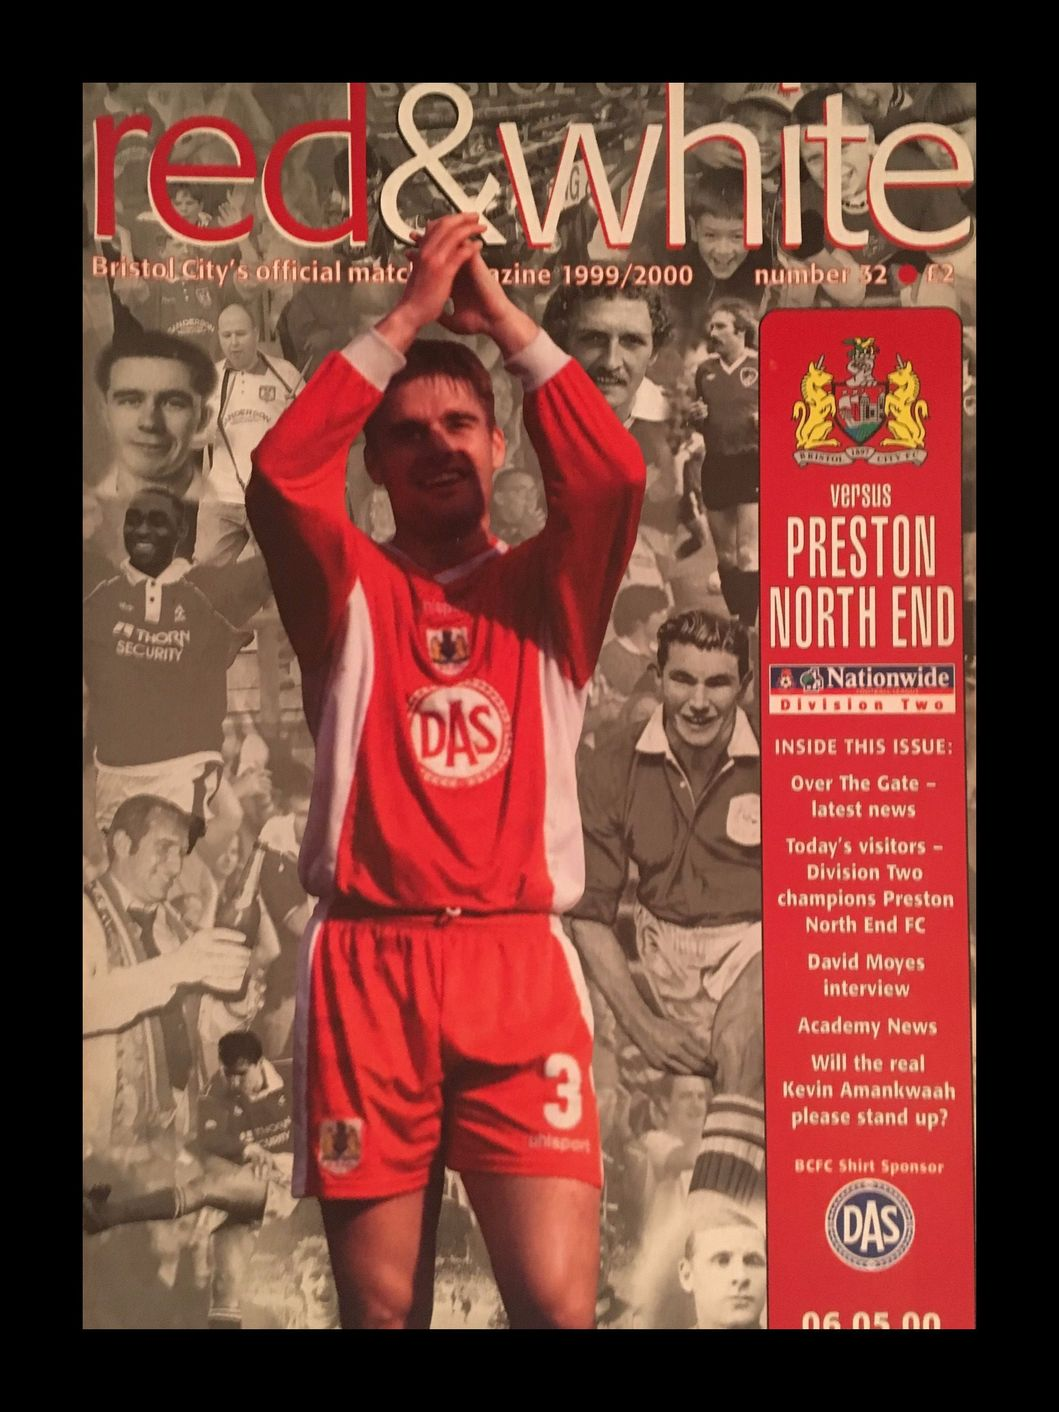 Bristol City v Preston North End 06-05-2000 Programme